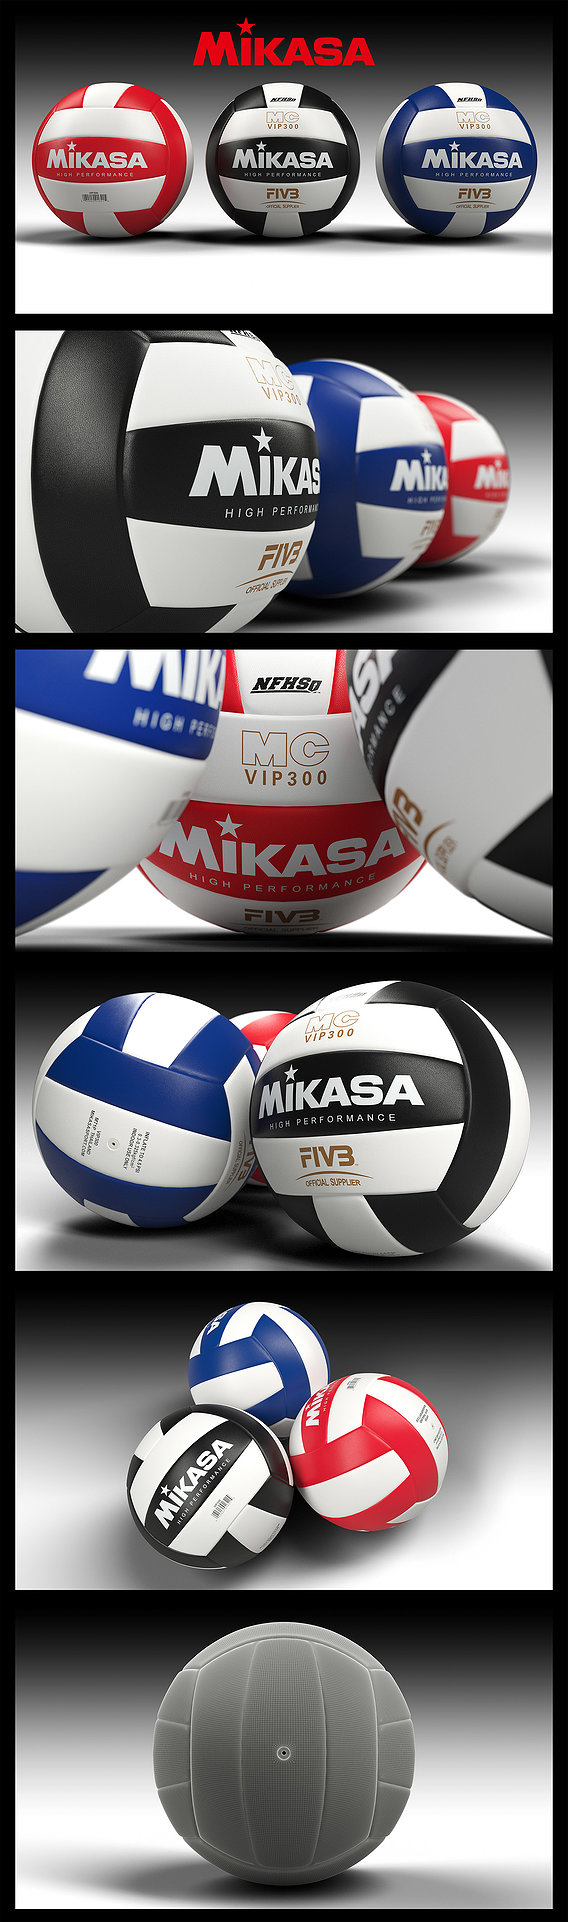 Volleyball - ball - Mikasa VIP300 Series